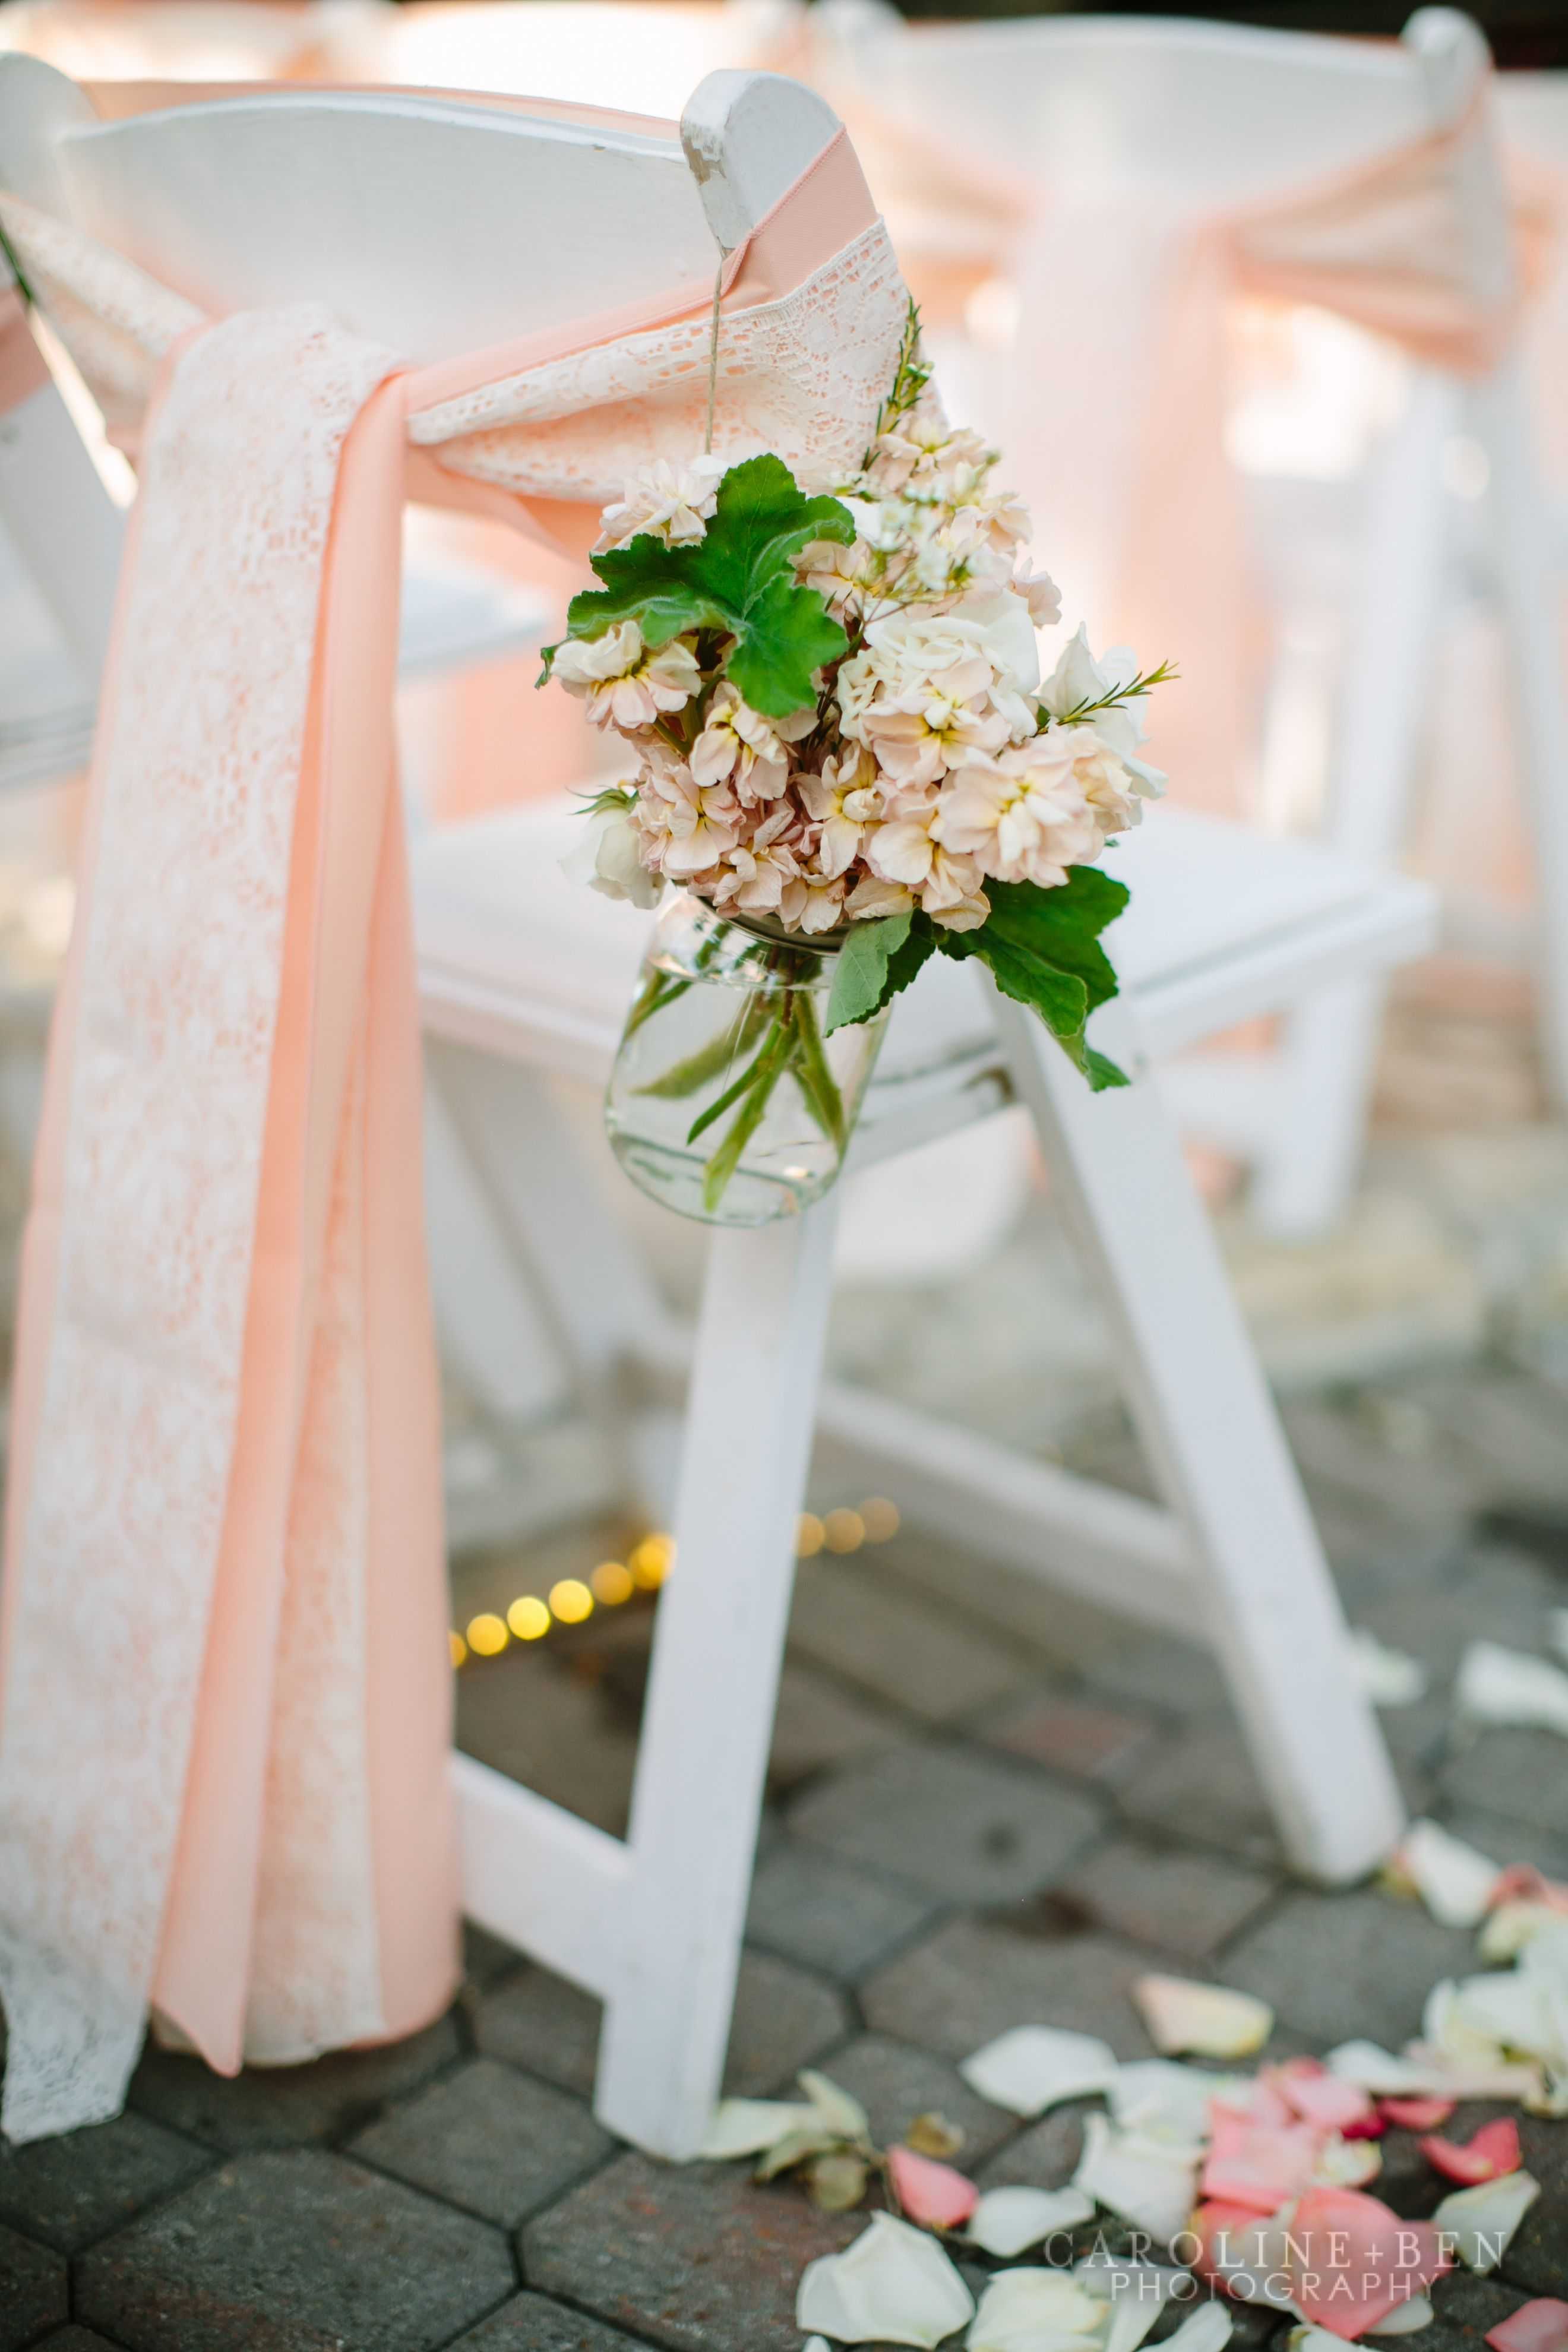 Wedding Styling Ideas Aisle Decor Lace And Peach Ribbon Wedding Styles De Mariage Chaises De Mariage Et Tulle Mariage